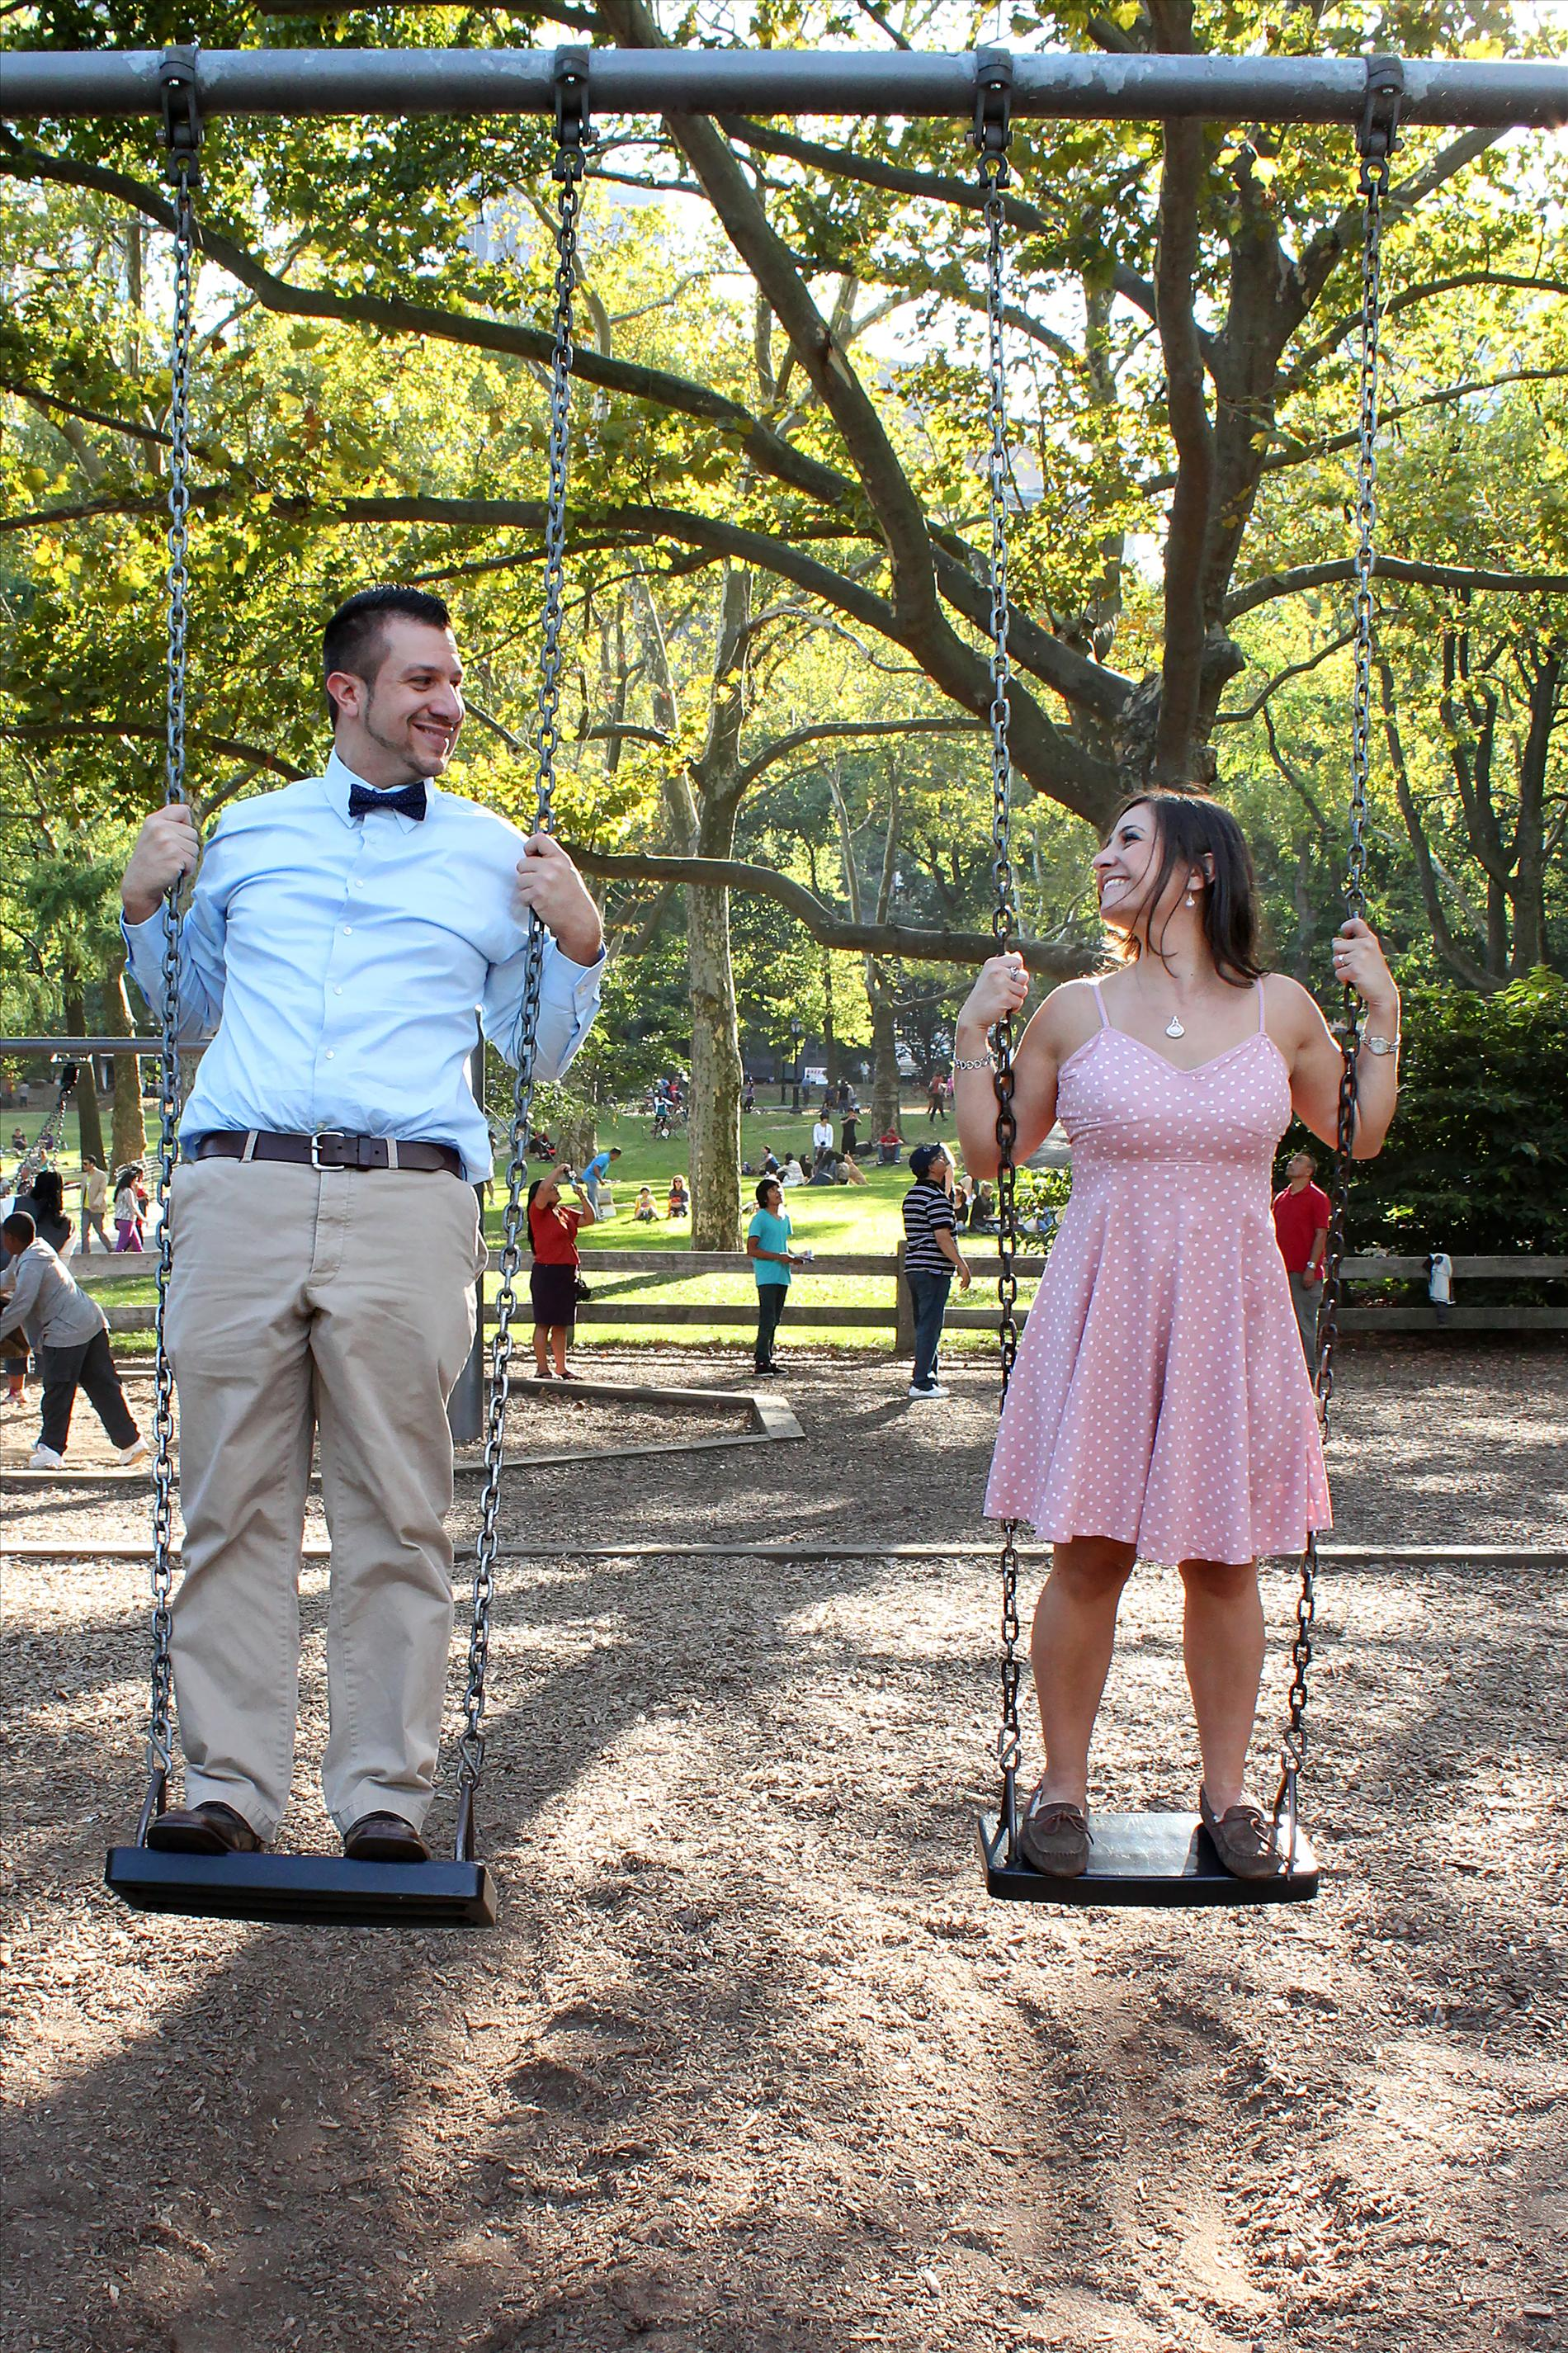 NYCCentralParkEngagementPhotos.standingonplaygroundswings.apicturesquememoryphotography